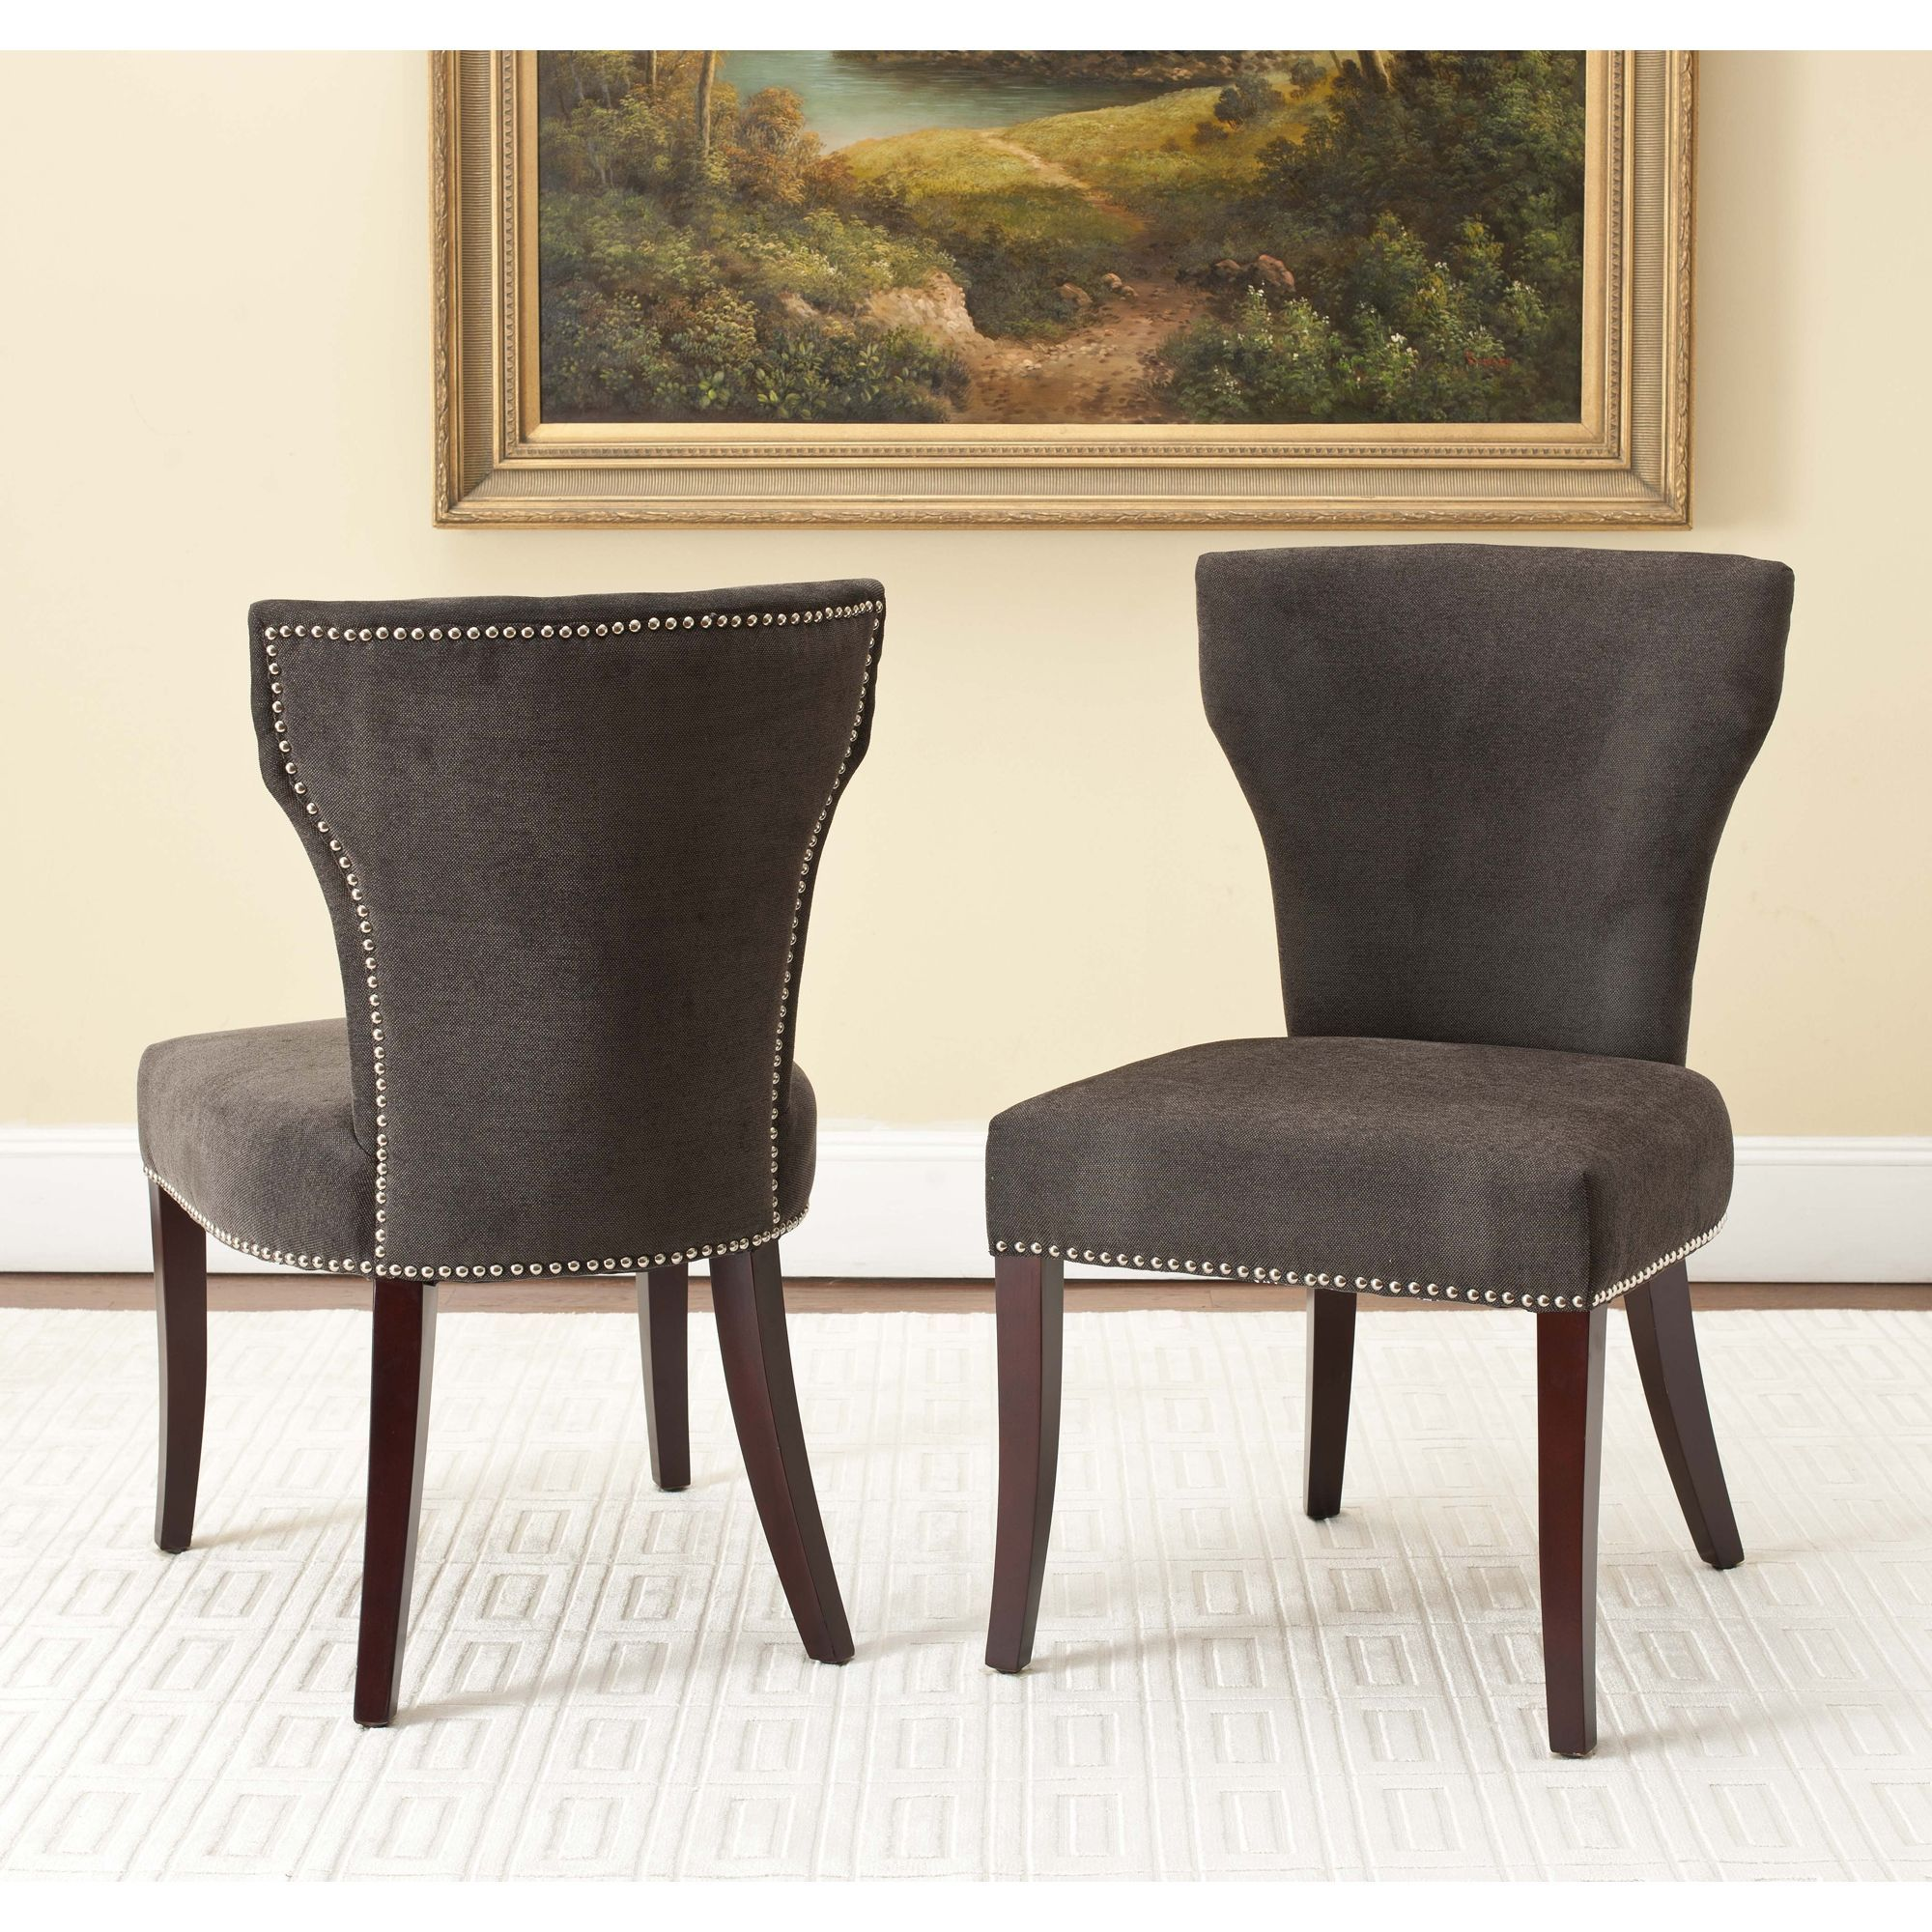 Safavieh En Vogue Dining Matty Dark Grey Nailhead Chairs Set Of 2 Mcr4513c Set2 Black Cherry